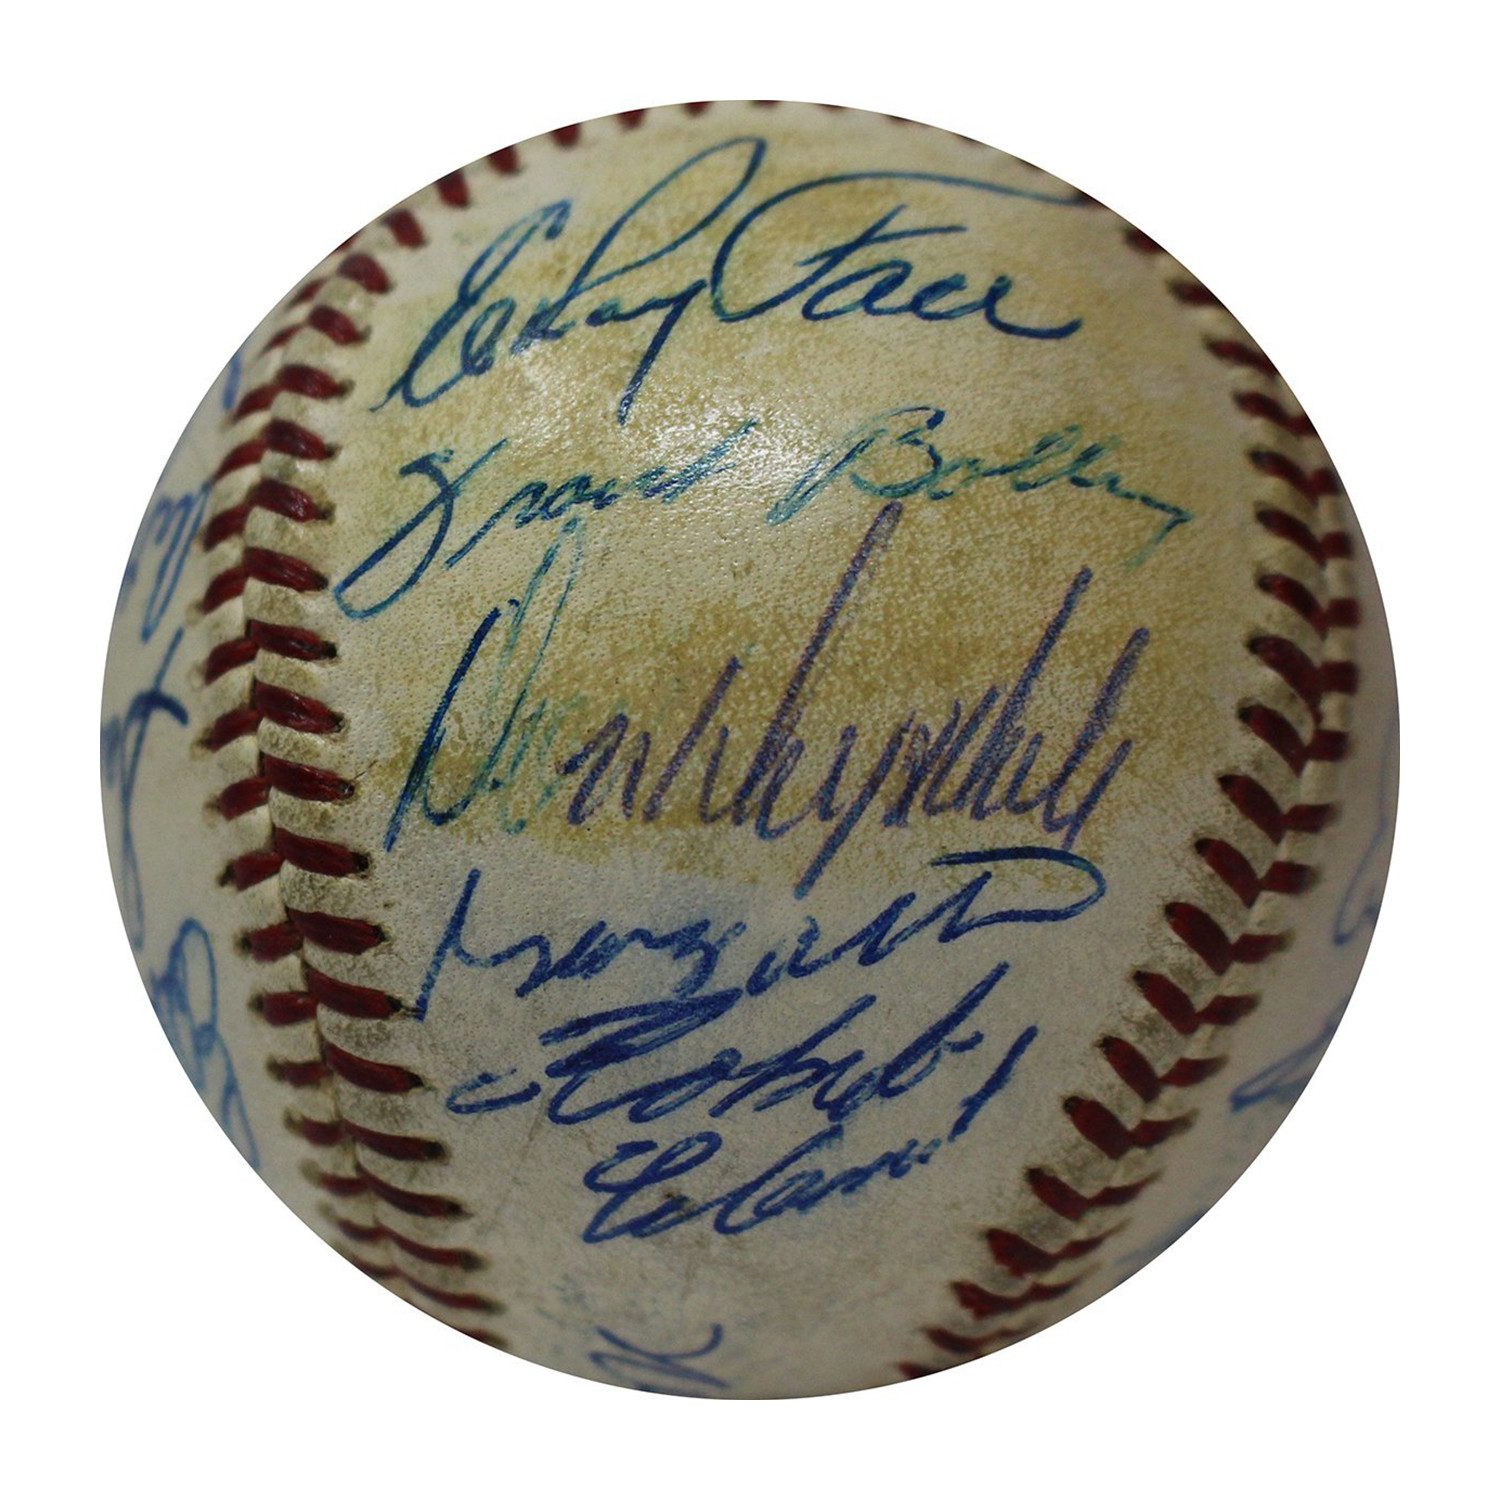 ddbe203a 1961 National League All Star Team Signed Baseball - Steiner Sports ...